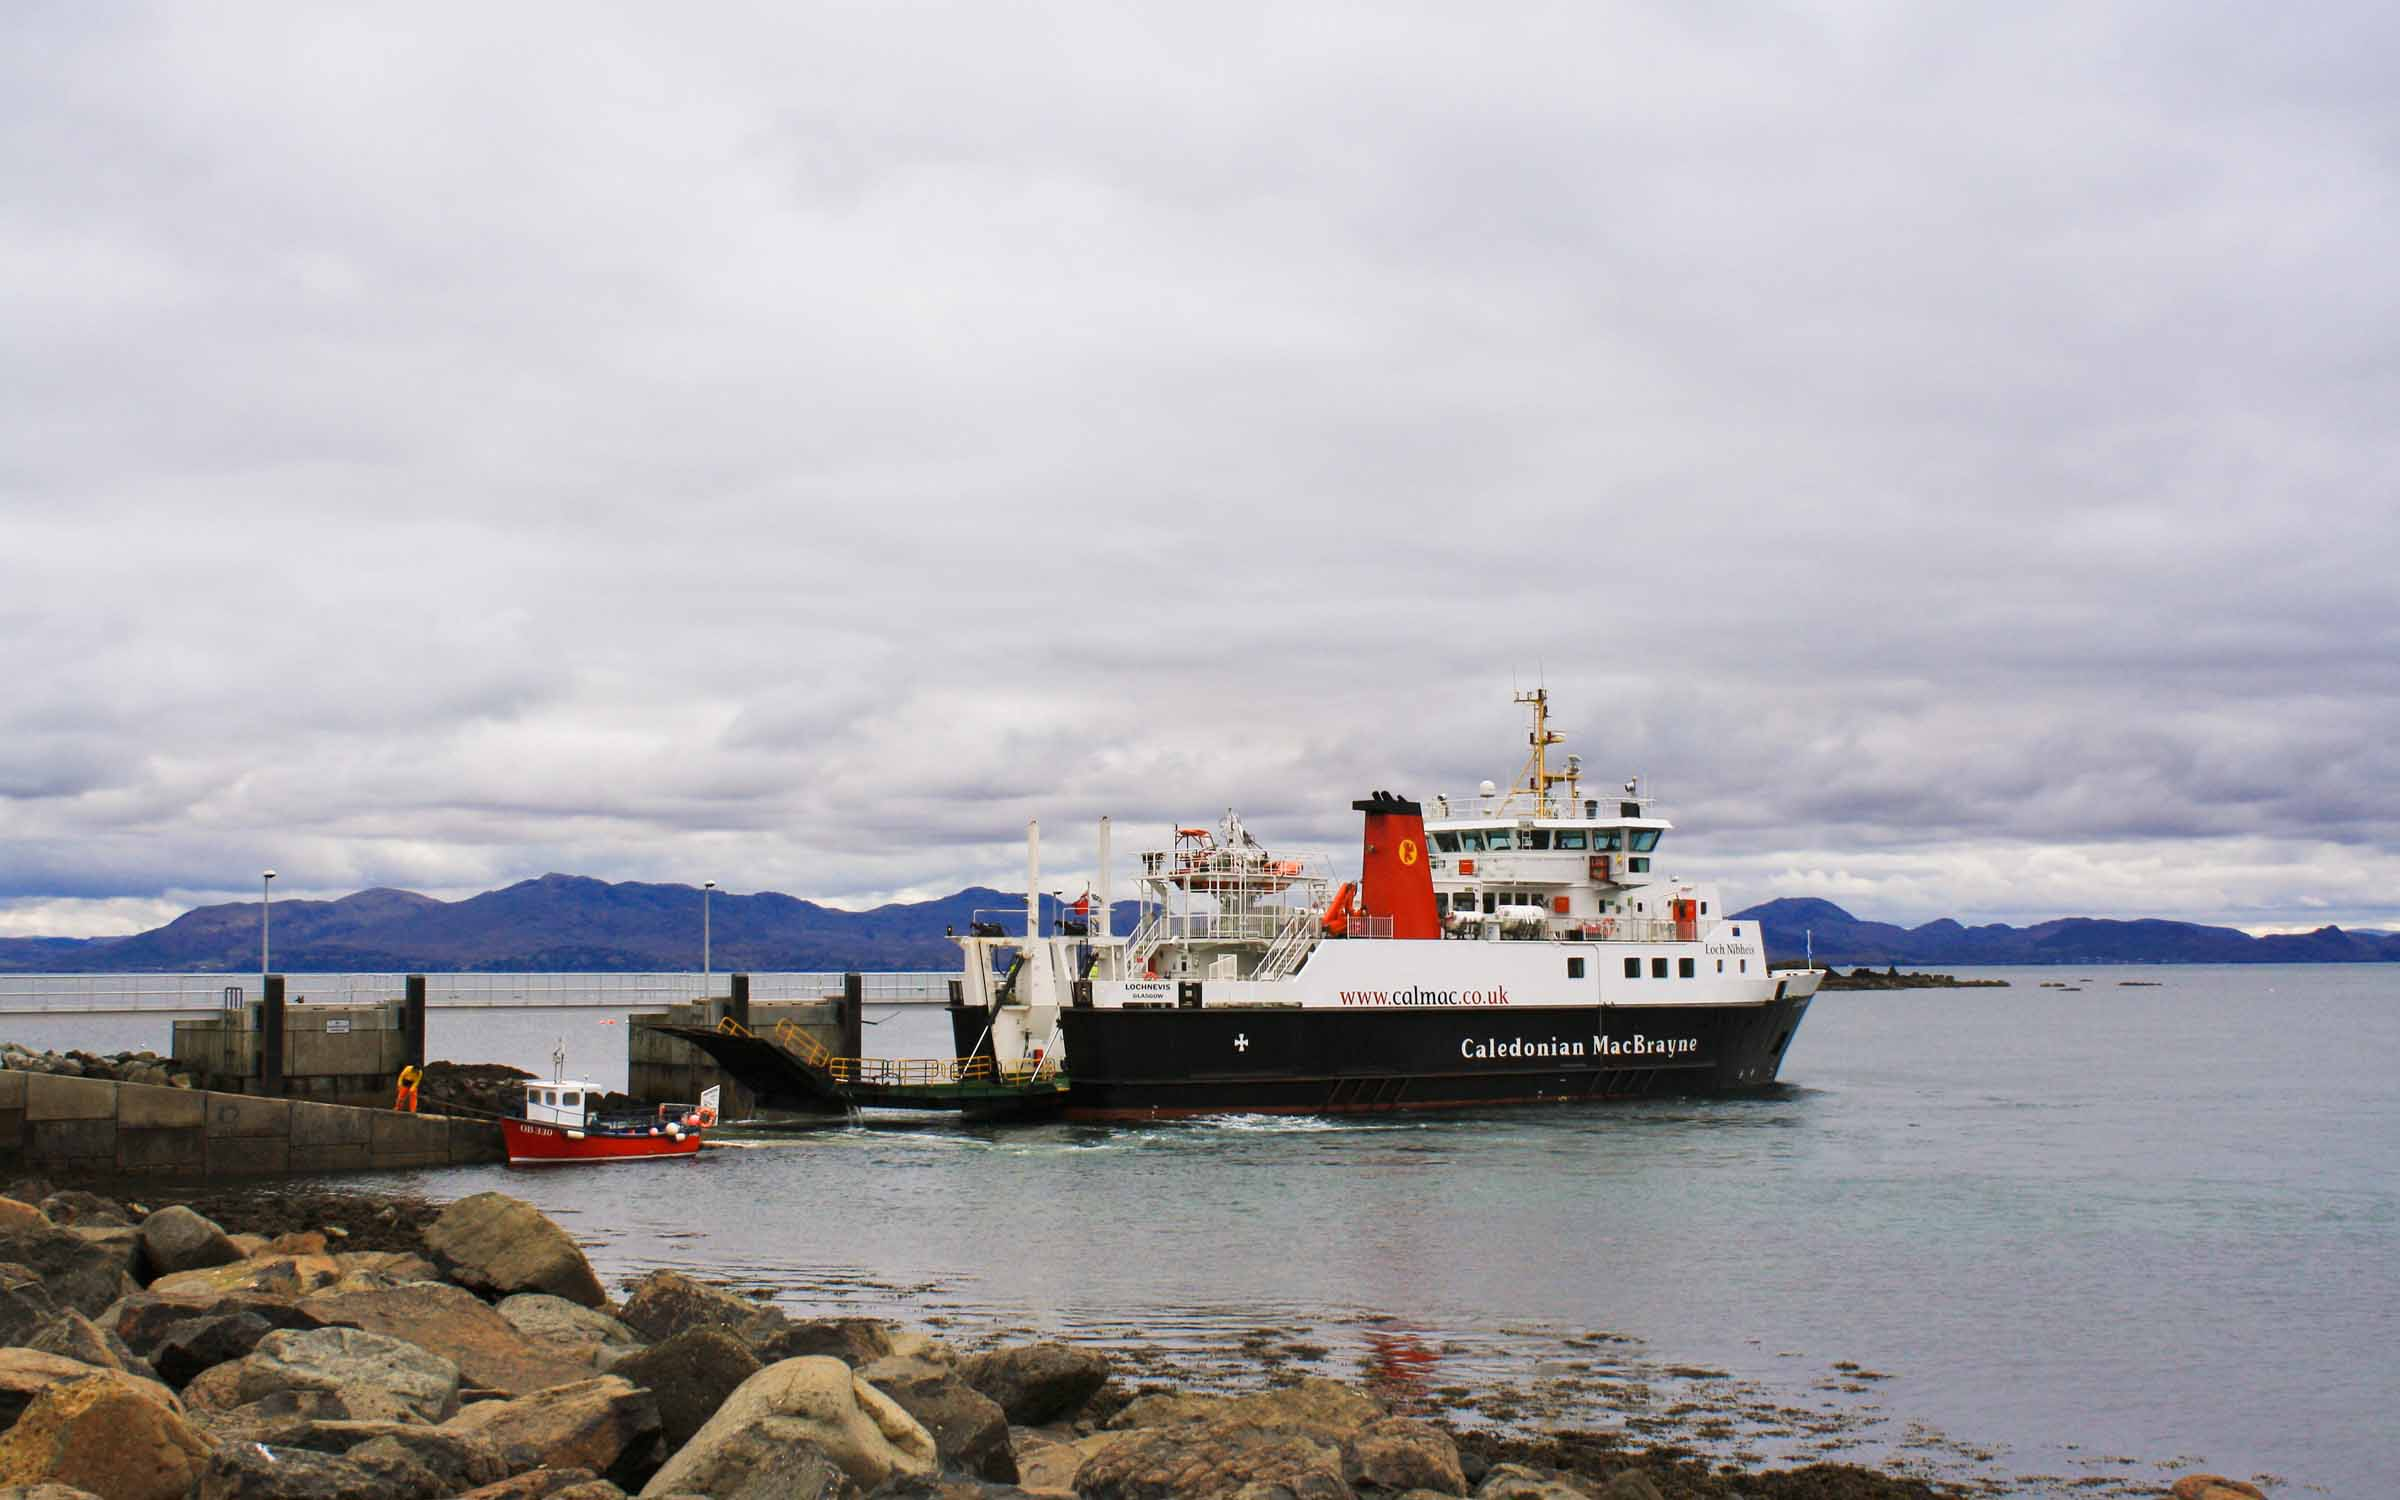 Lochnevis at Muck (Ships of CalMac)